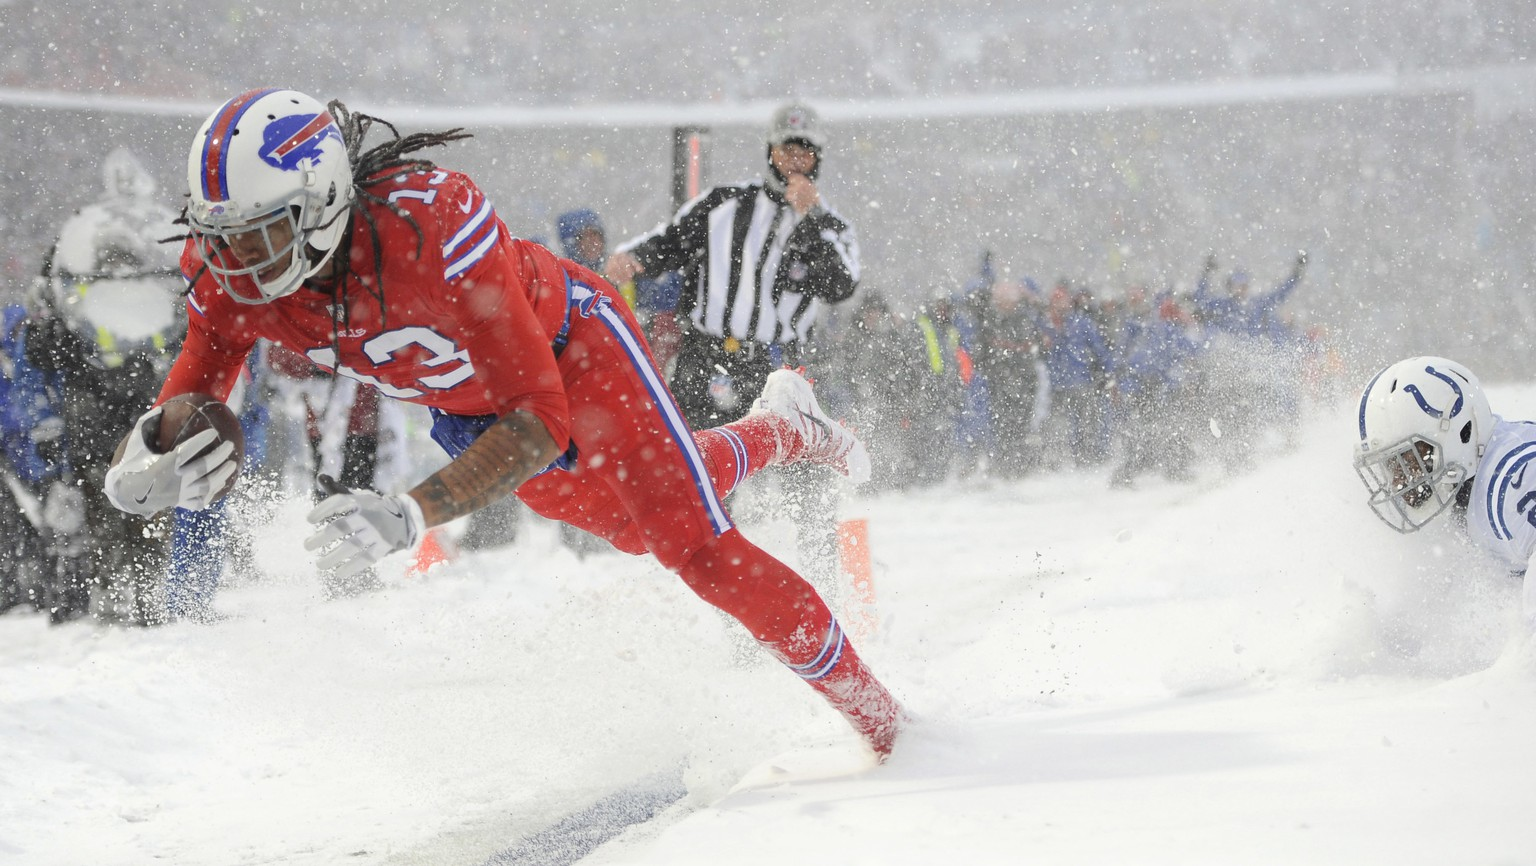 Buffalo Bills wide receiver Kelvin Benjamin scores a touchdown during the first half of an NFL football game against the Indianapolis Colts, Sunday, Dec. 10, 2017, in Orchard Park, N.Y. (AP Photo/Adrian Kraus)